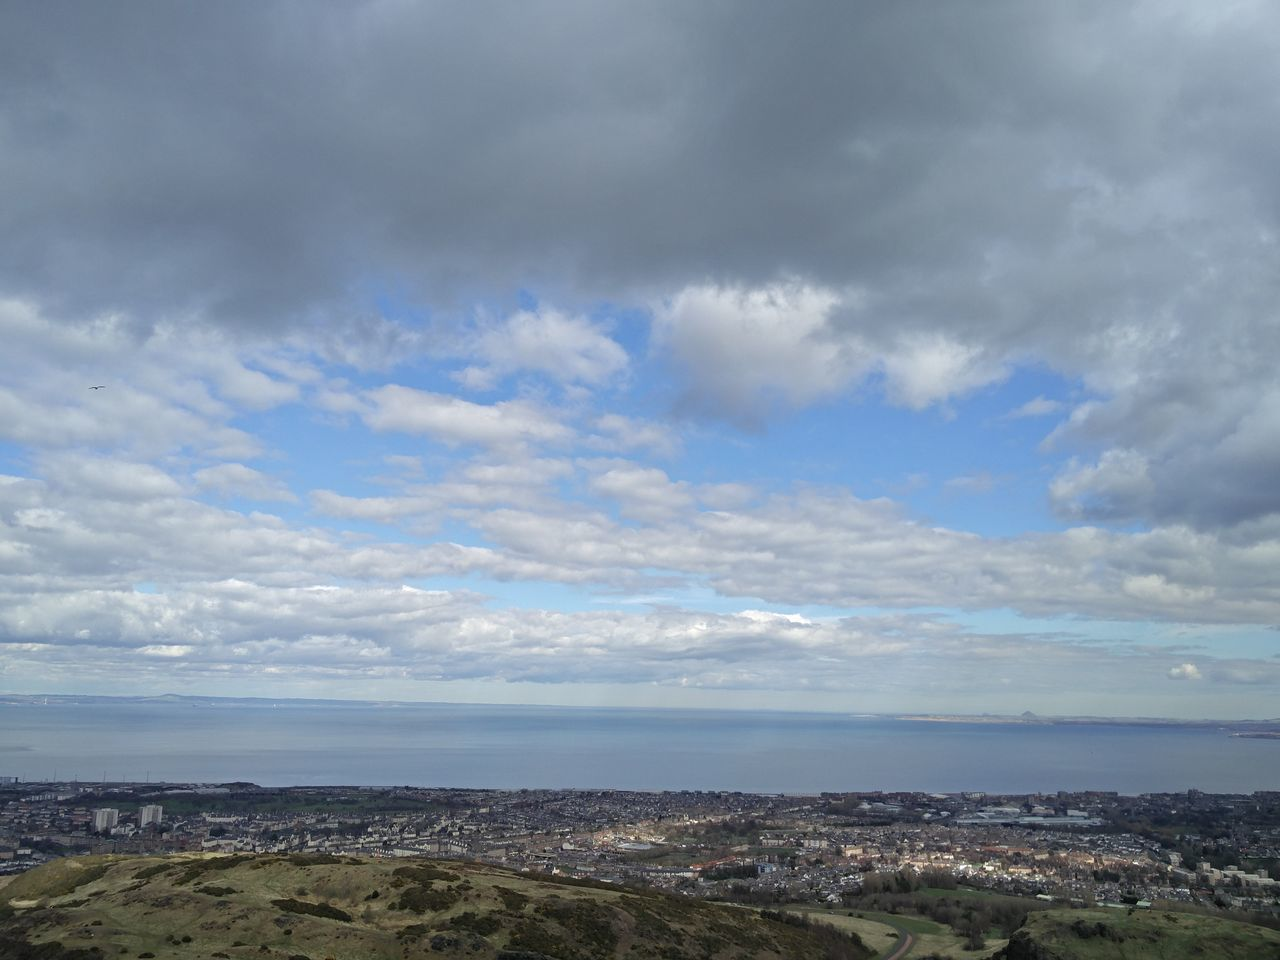 sky, cloud - sky, nature, beauty in nature, outdoors, no people, day, scenics, tranquility, landscape, cityscape